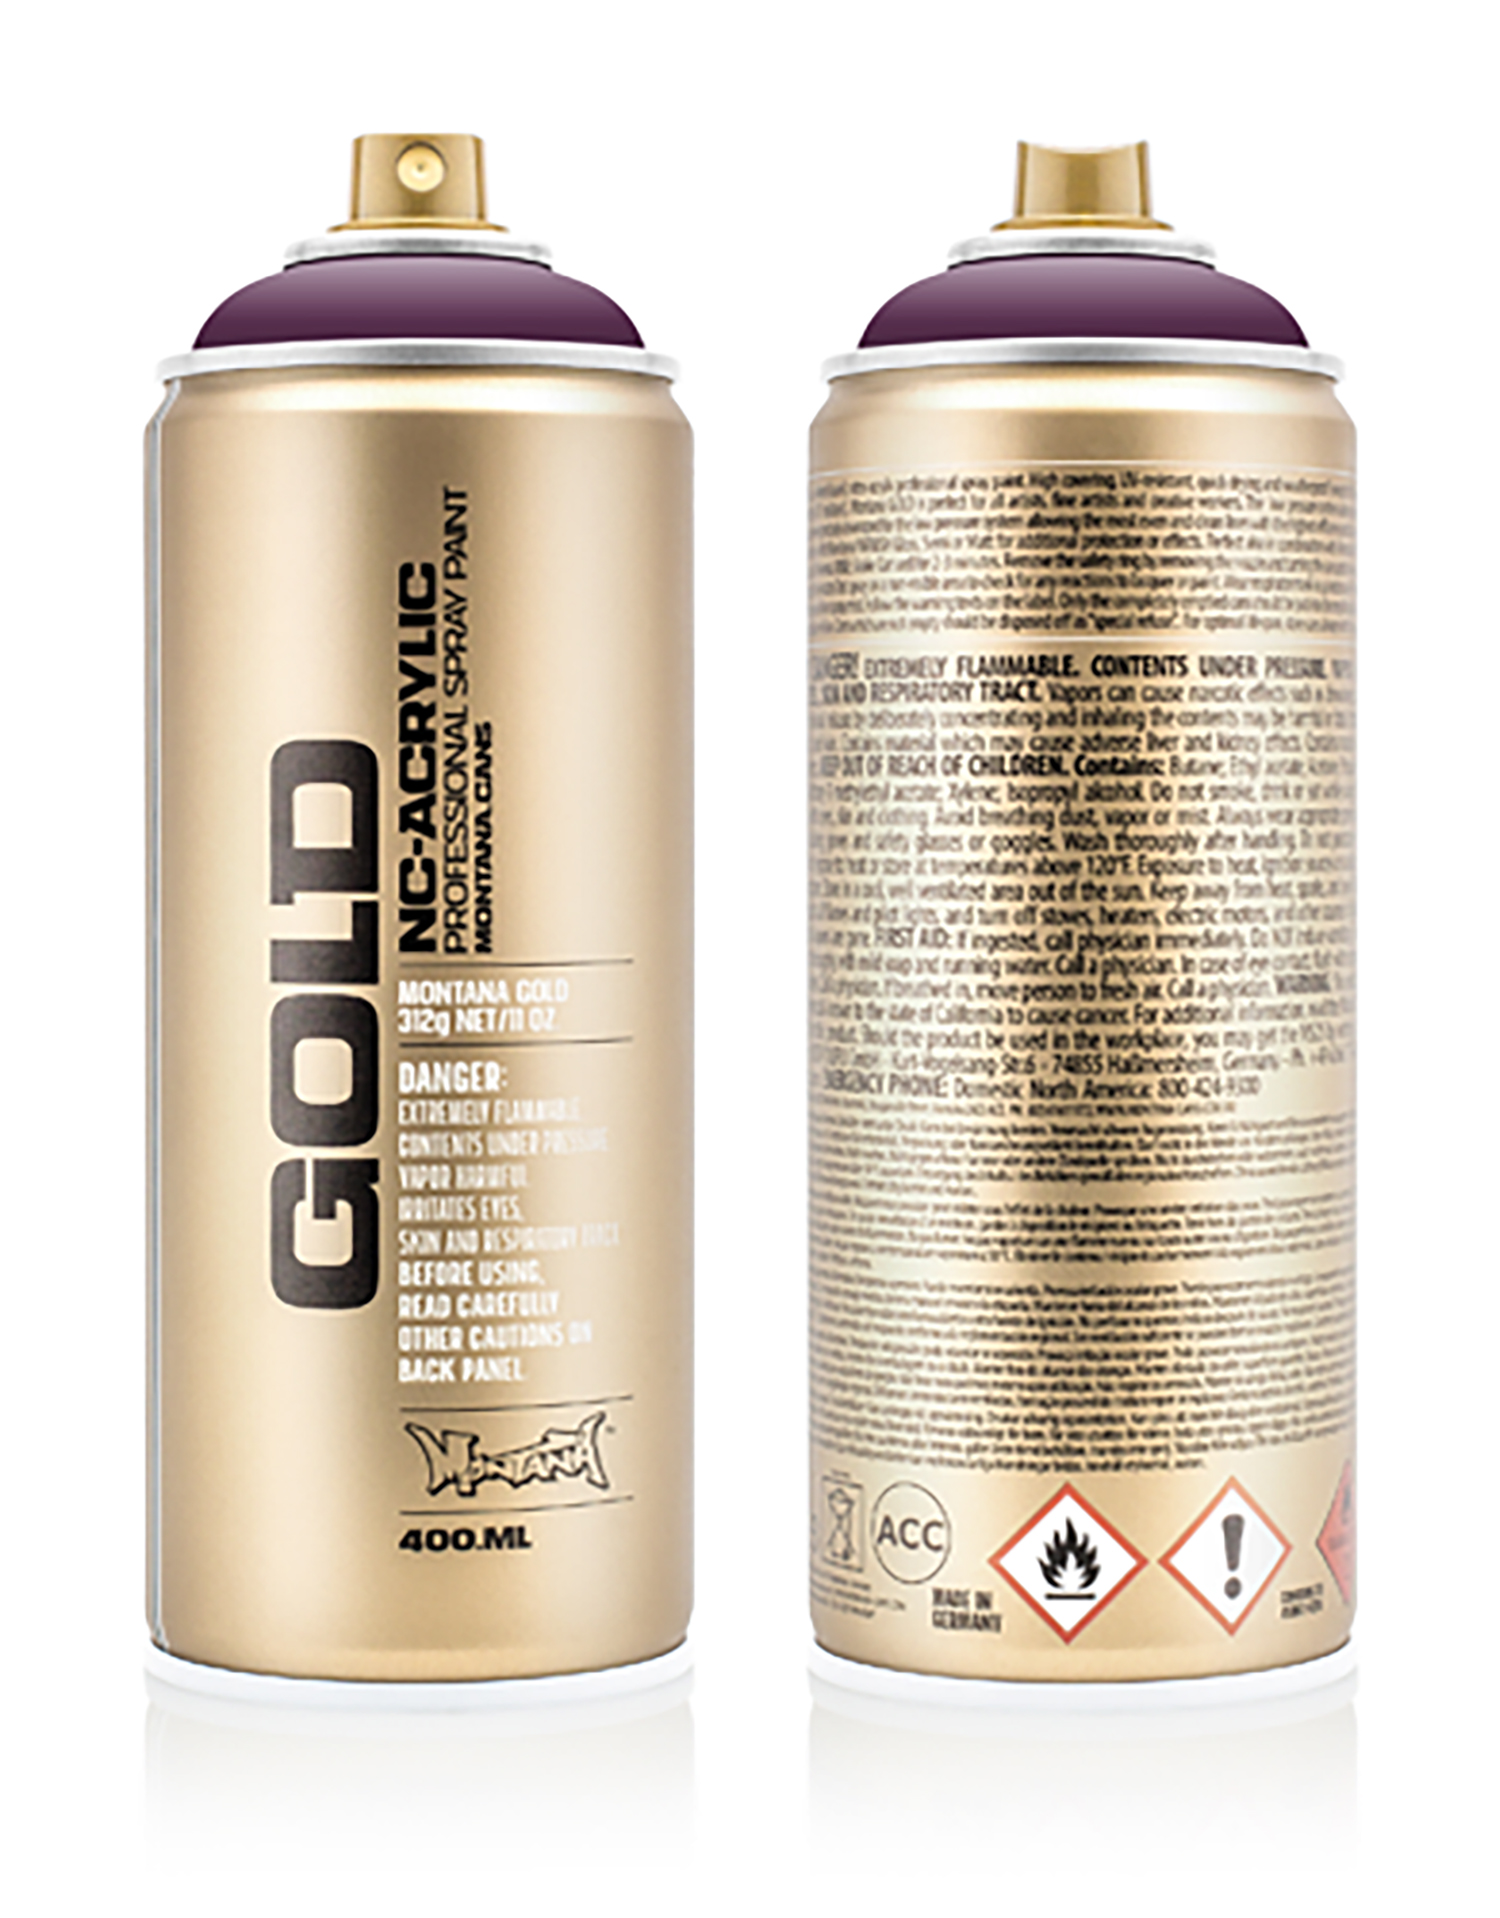 MONTANA-GOLD-SPRAY-400ML-G-4250